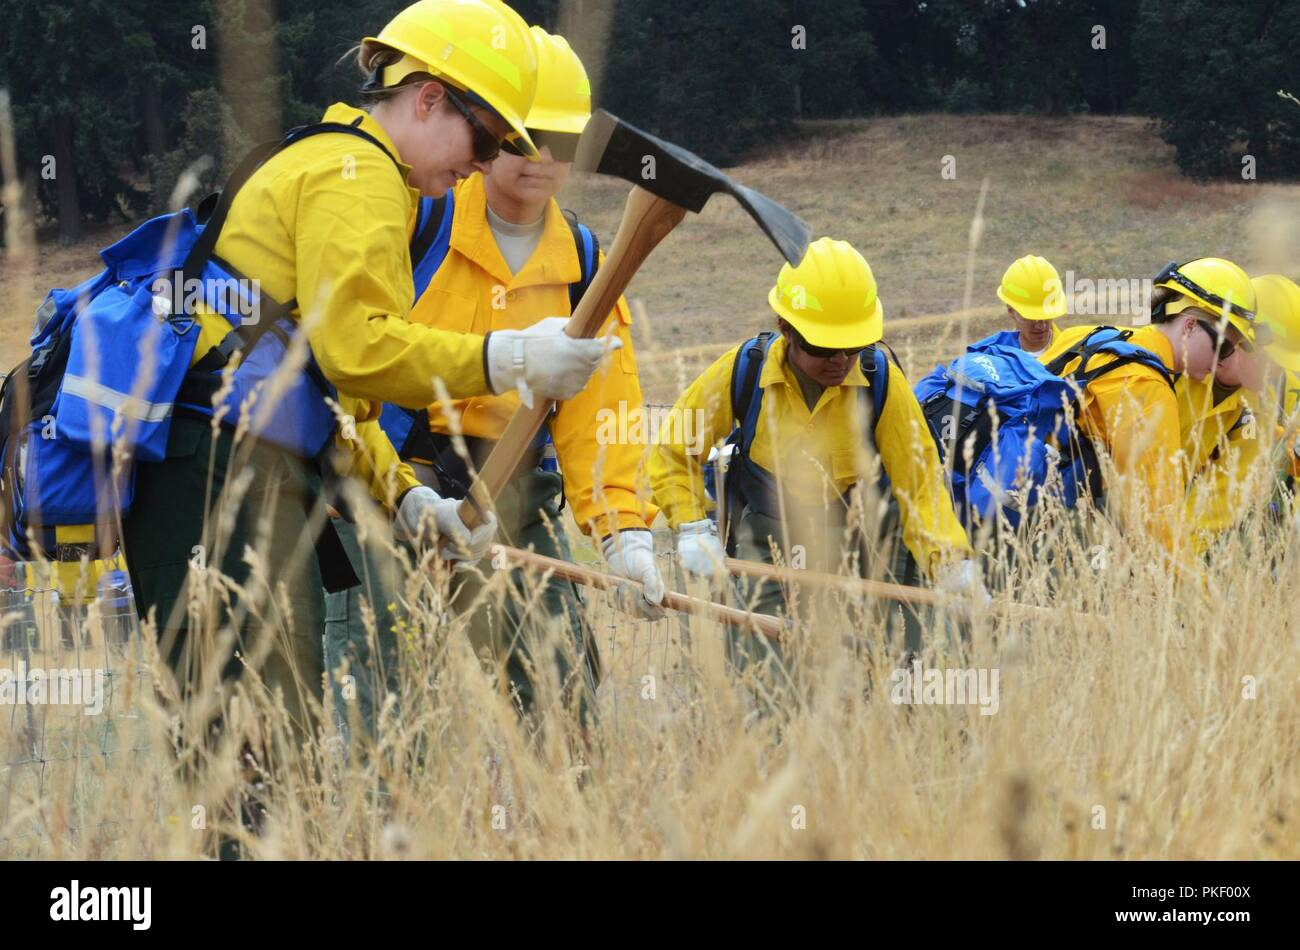 Wildland Firefighters Stock Photos Wildland Firefighters Stock